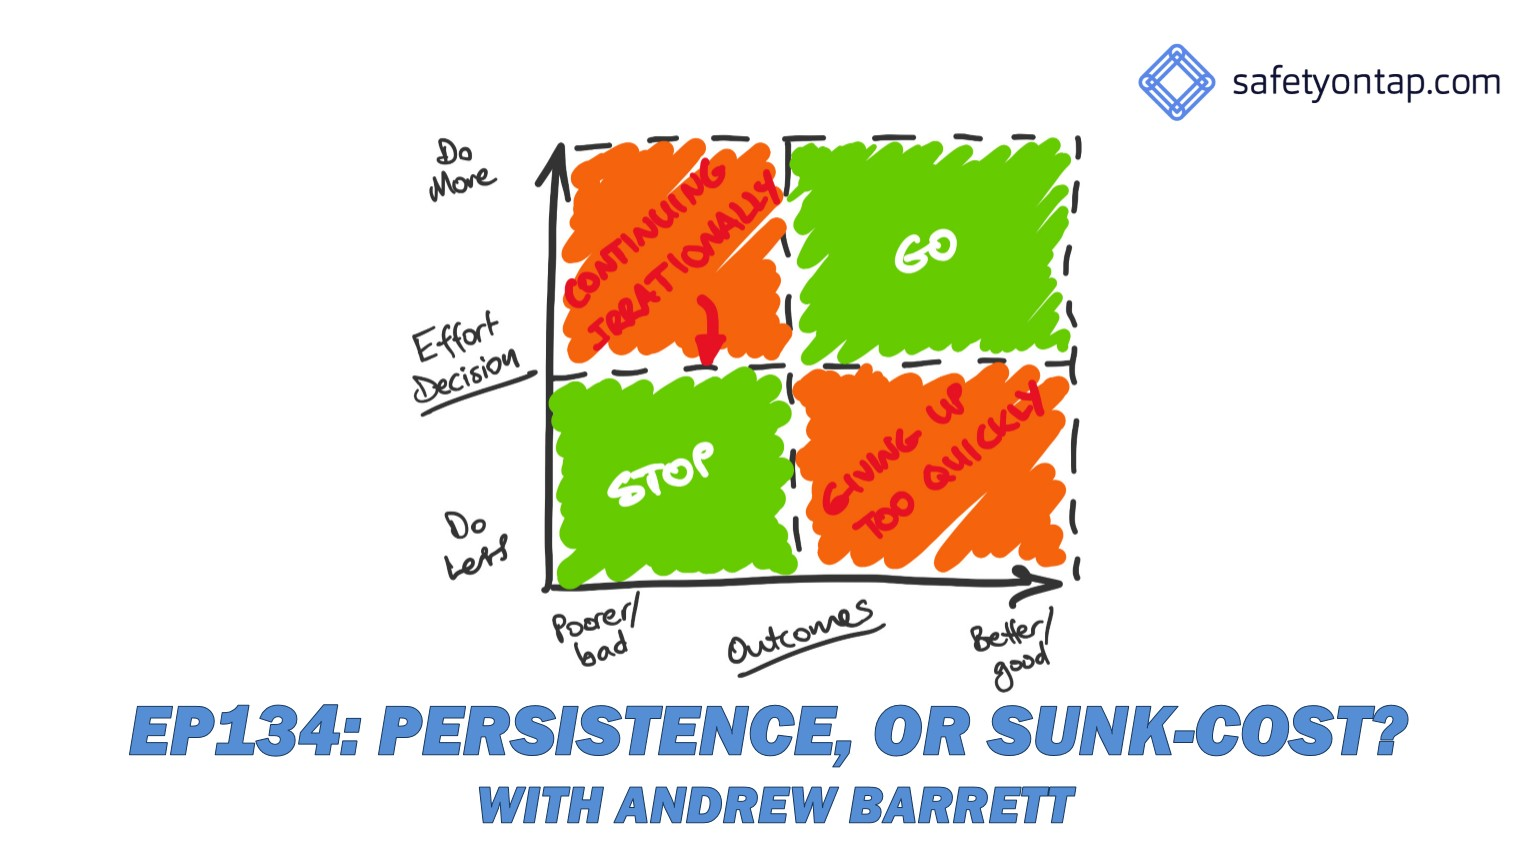 Ep134: Persistence, or sunk-cost? With Andrew Barrett